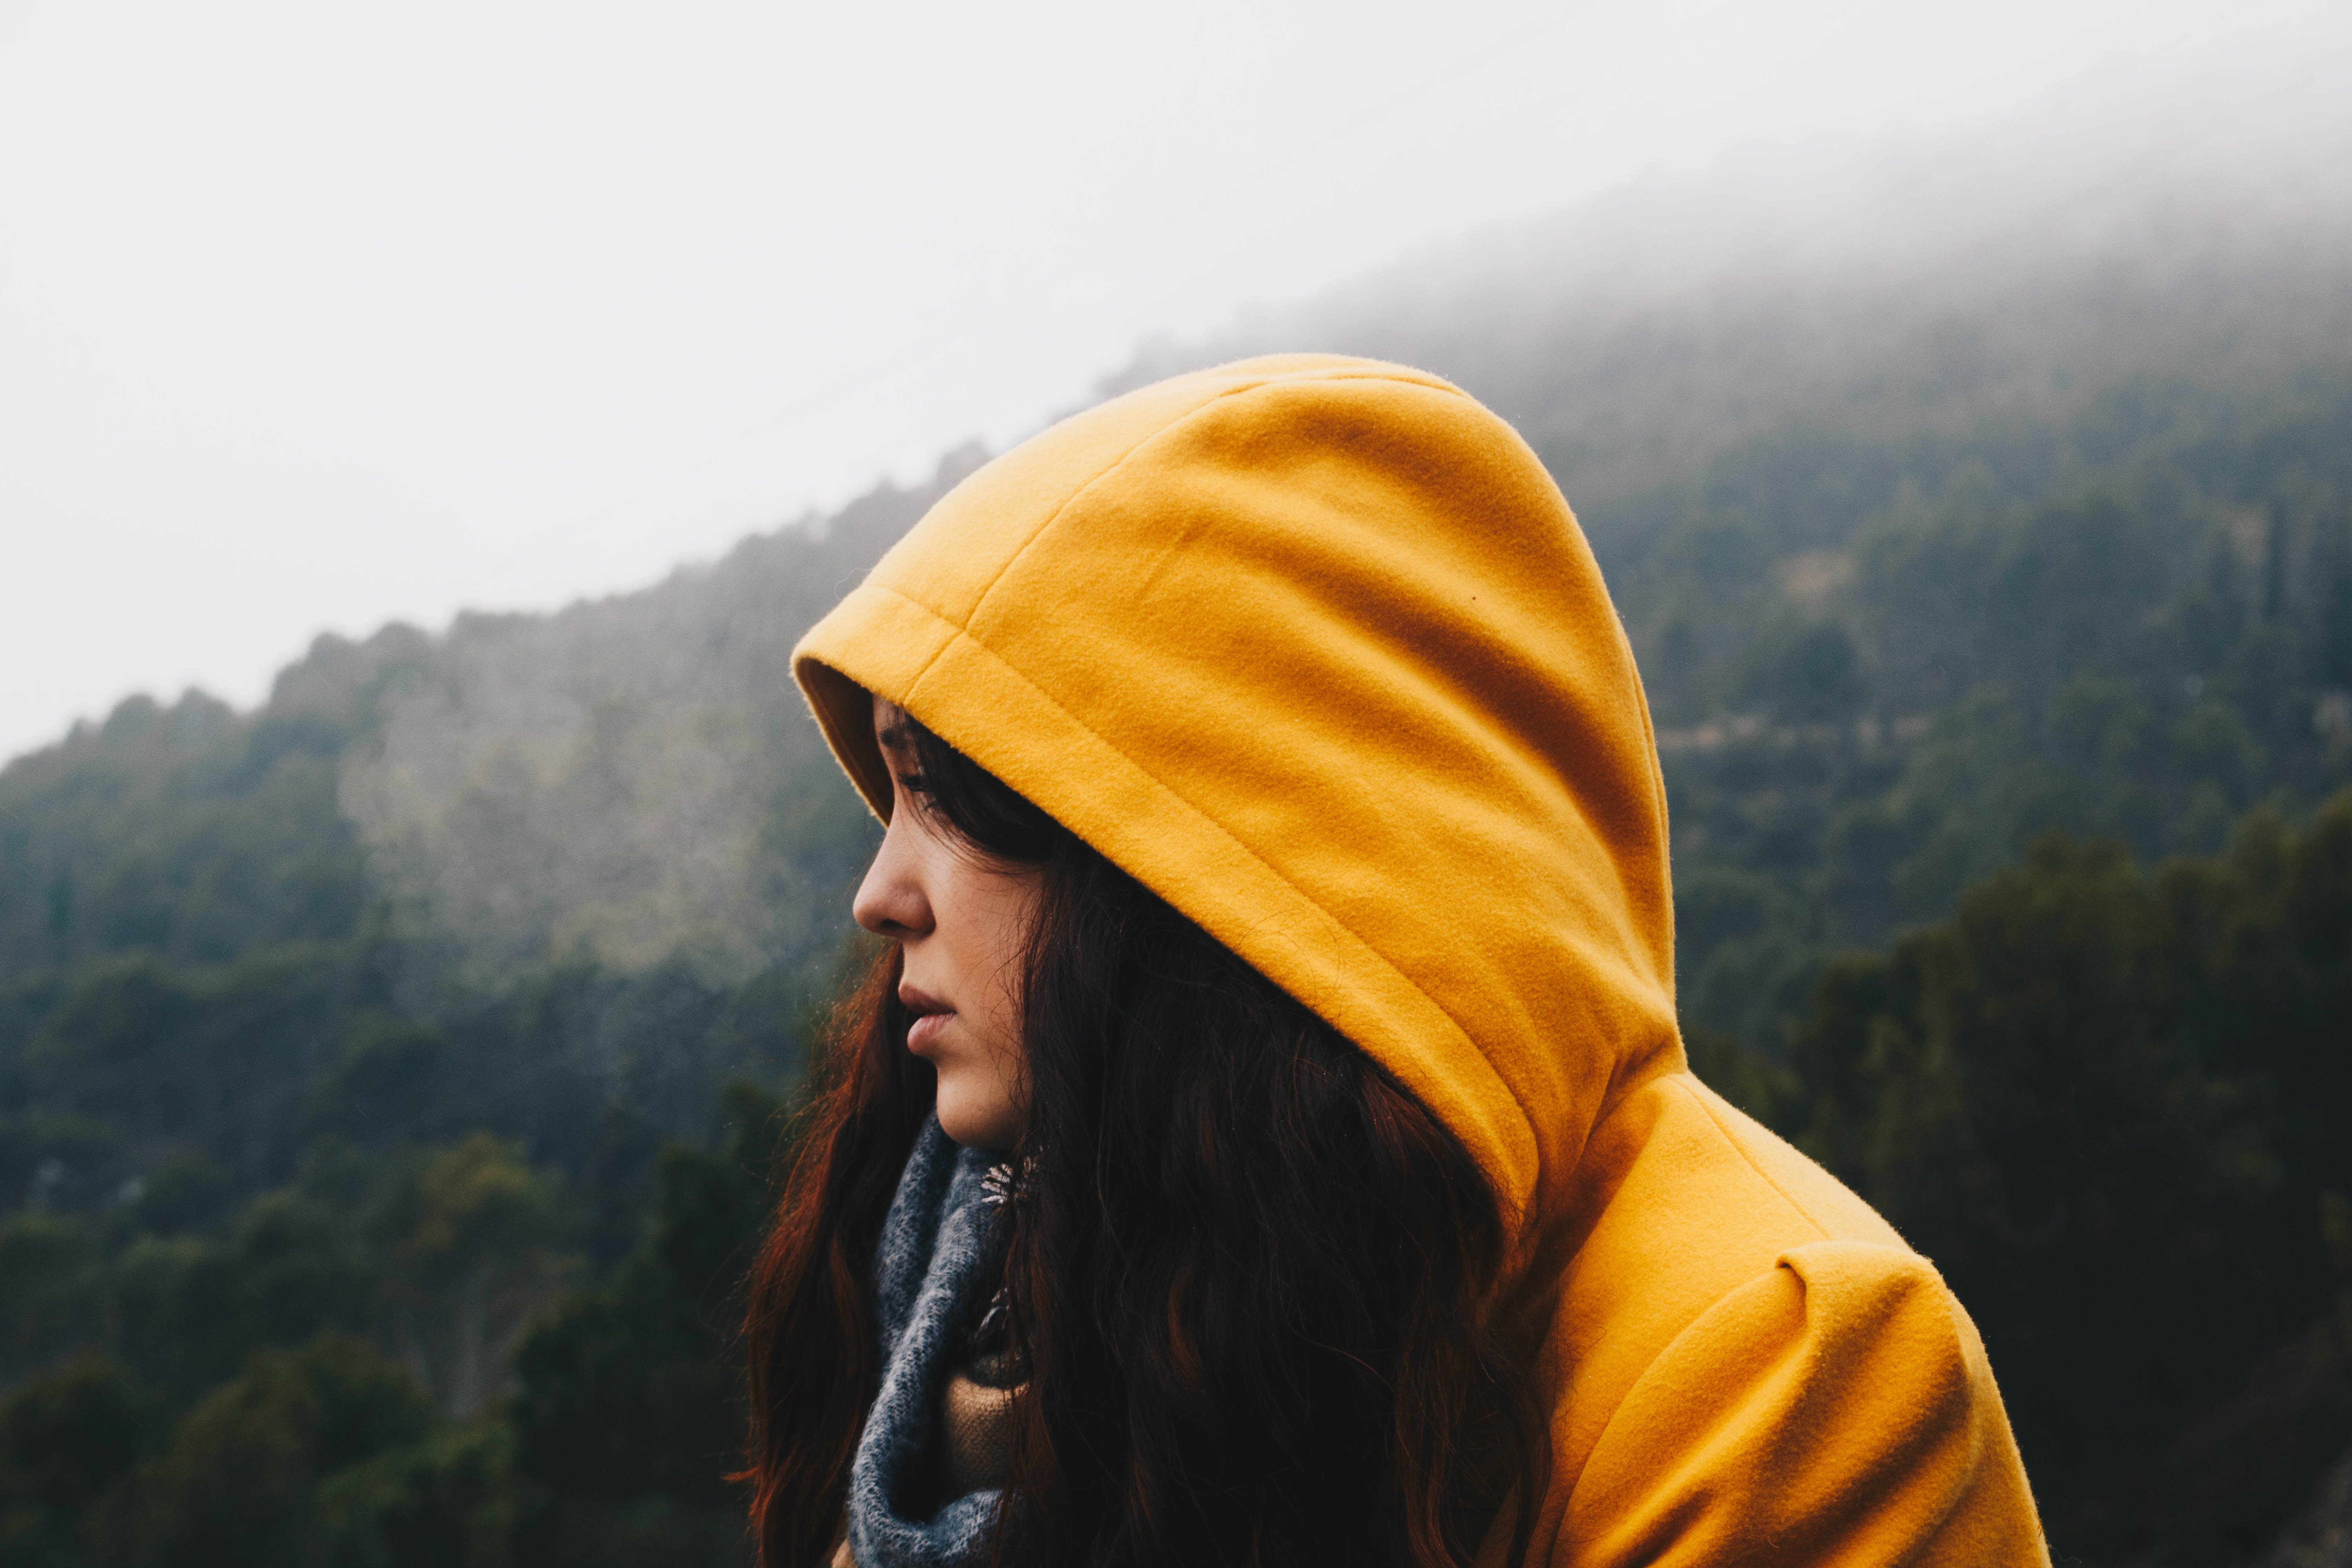 A dark-haired woman in a yellow hood against a backdrop of mountain forests